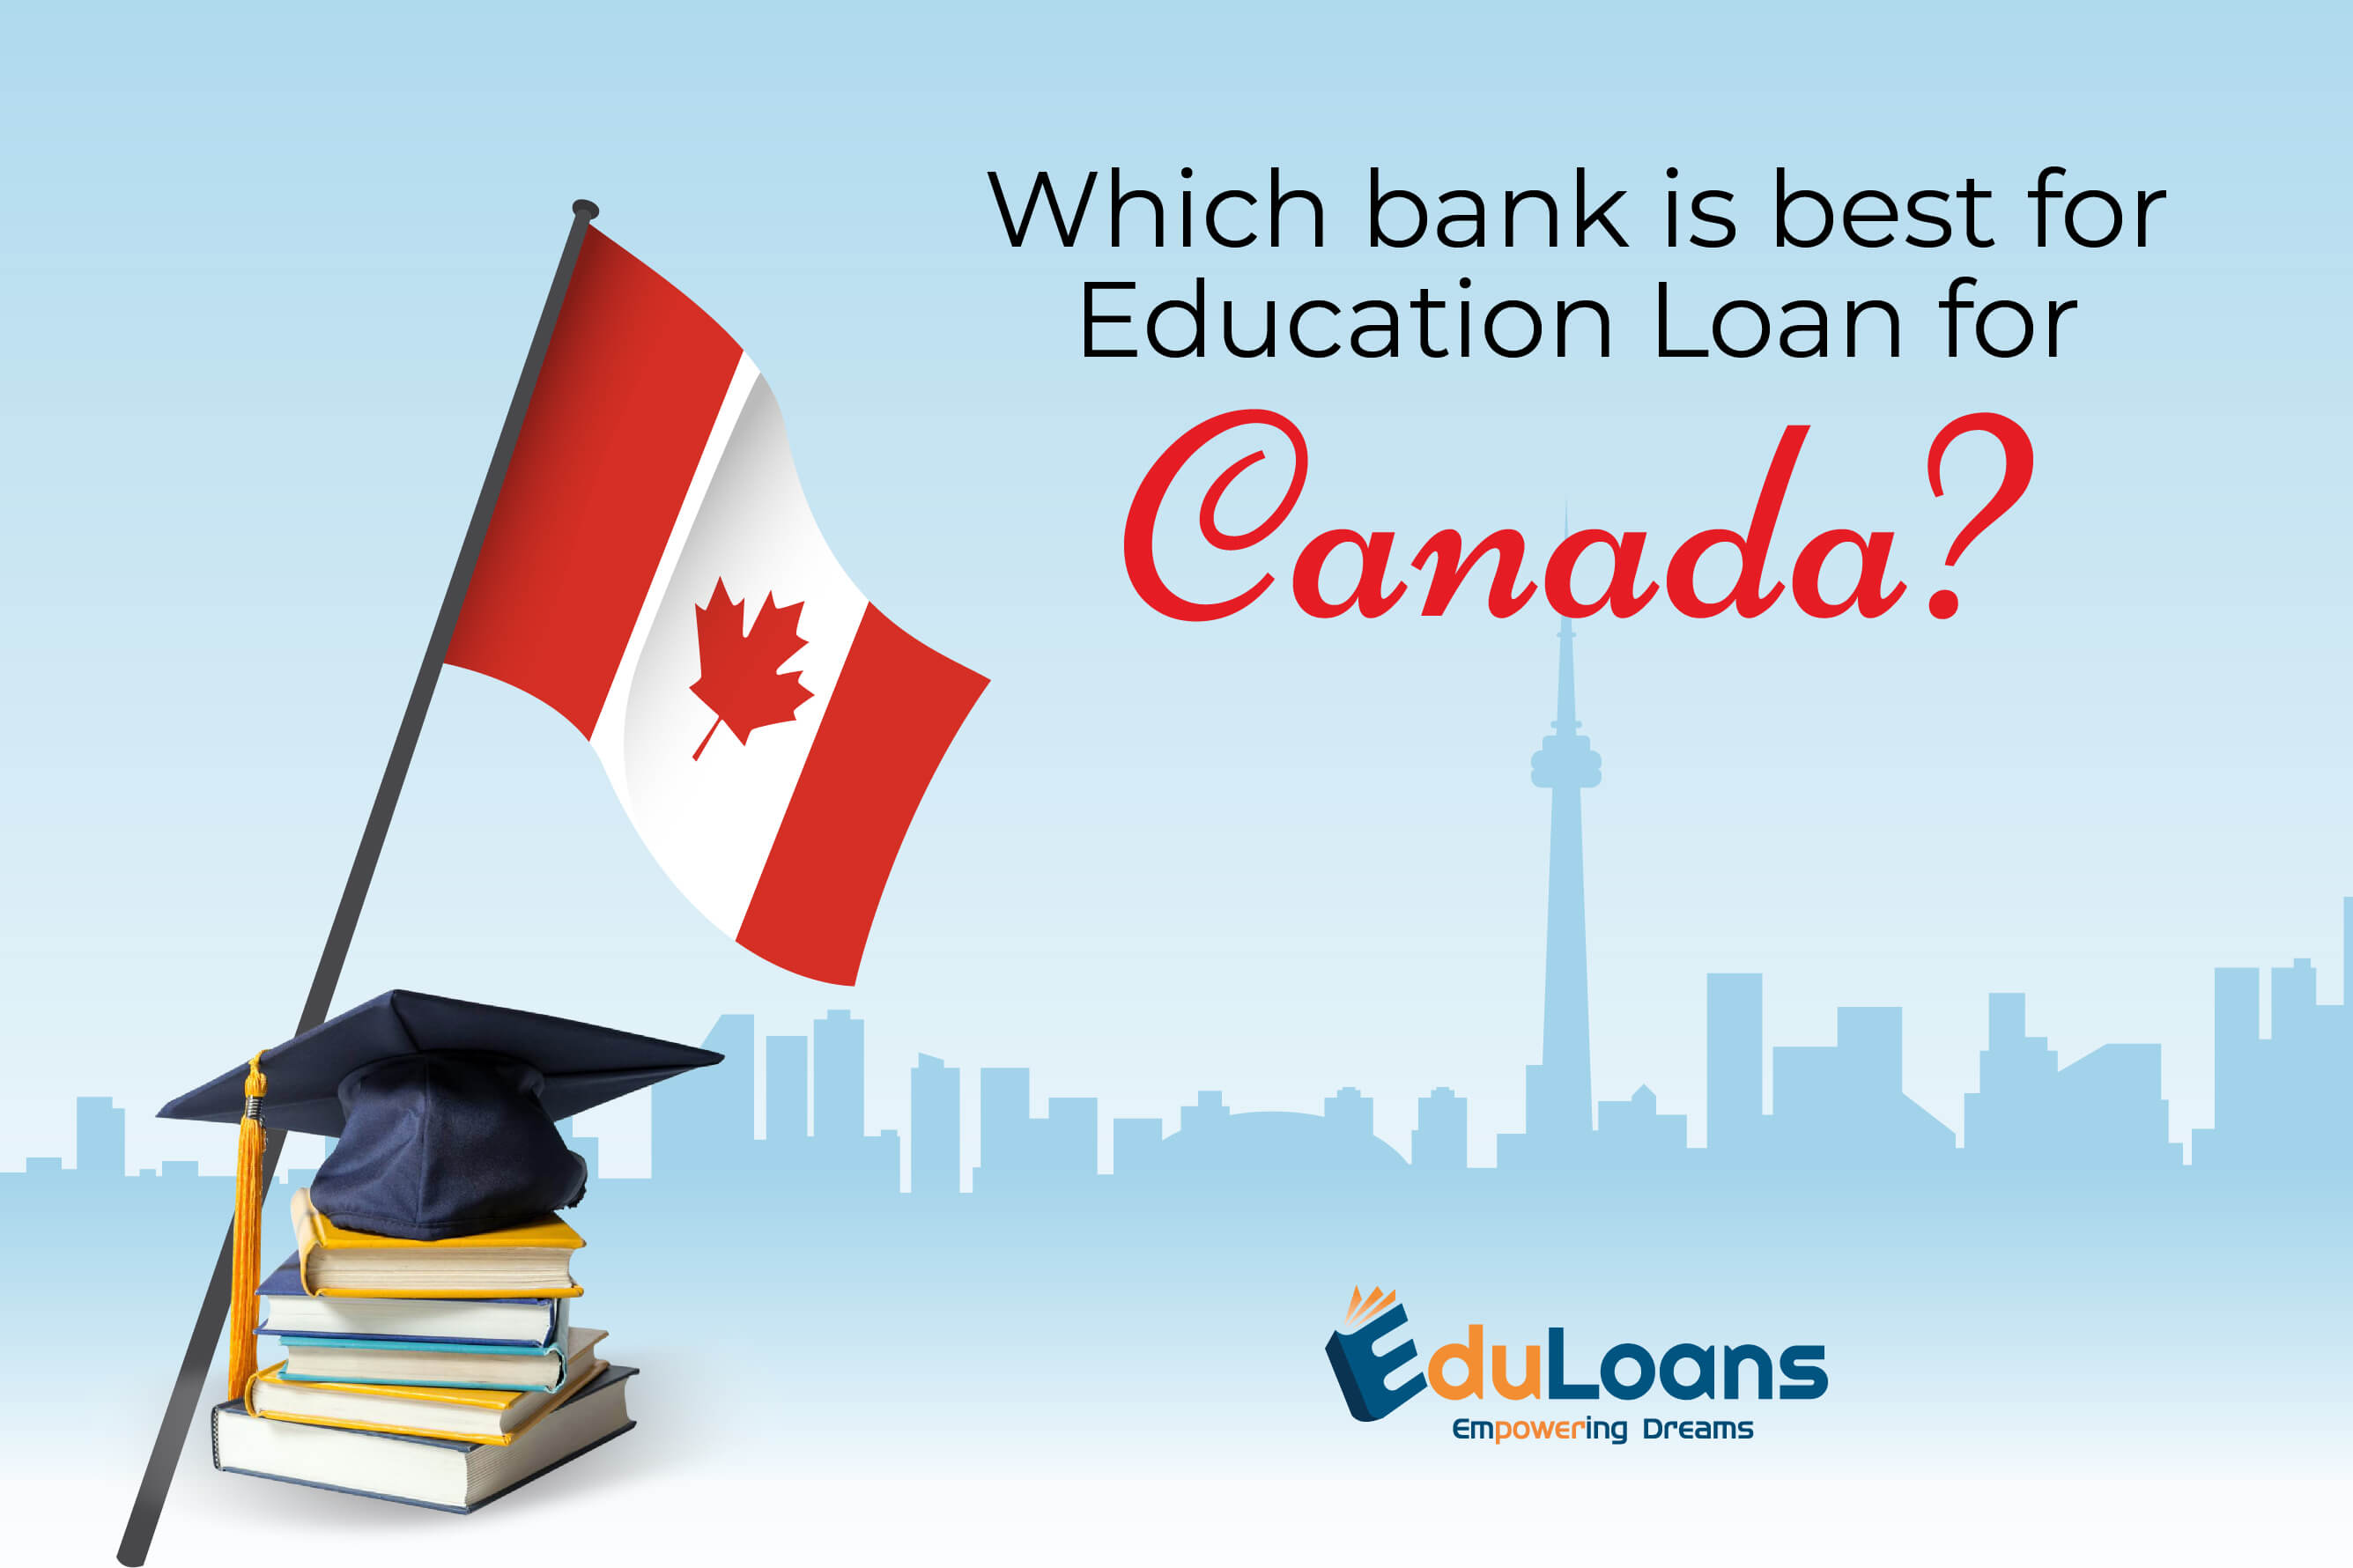 Which bank is best for education loan for Canada?